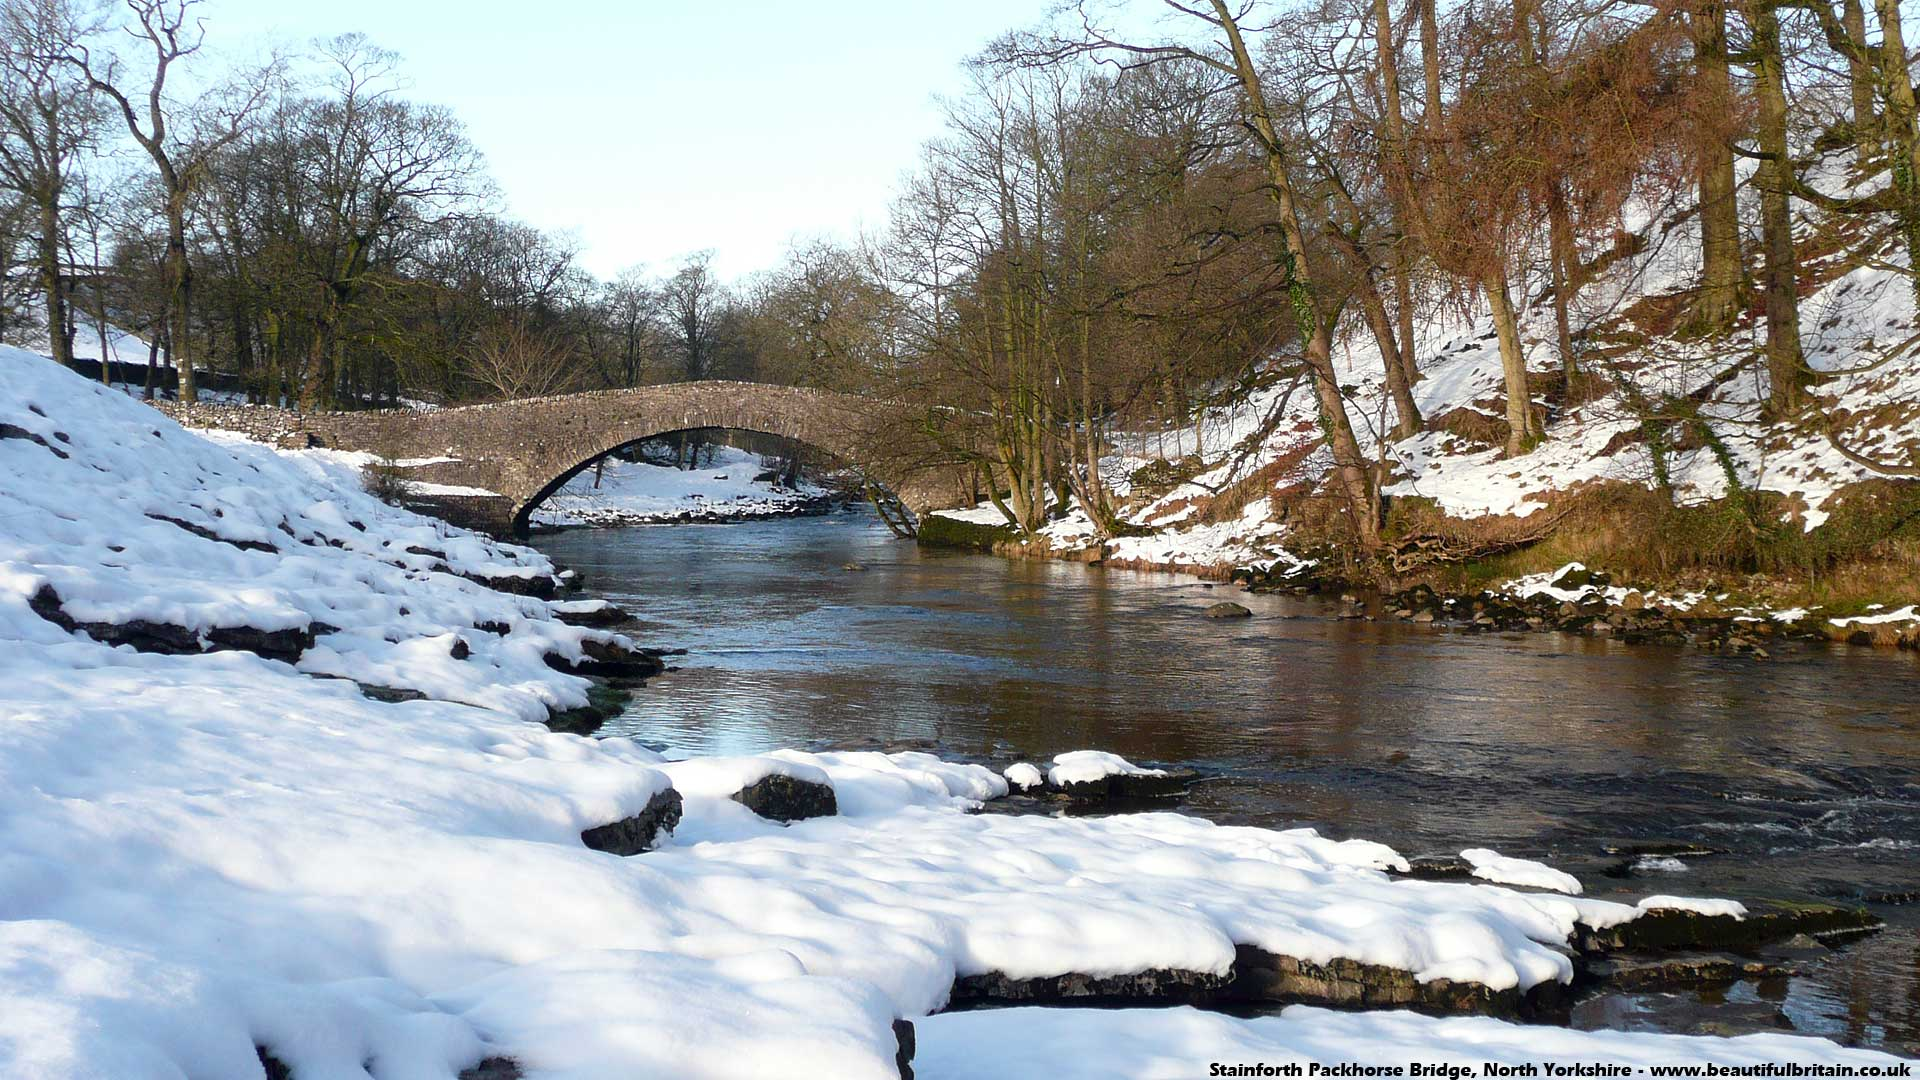 Stainforth Packhorse Bridge North Yorkshire